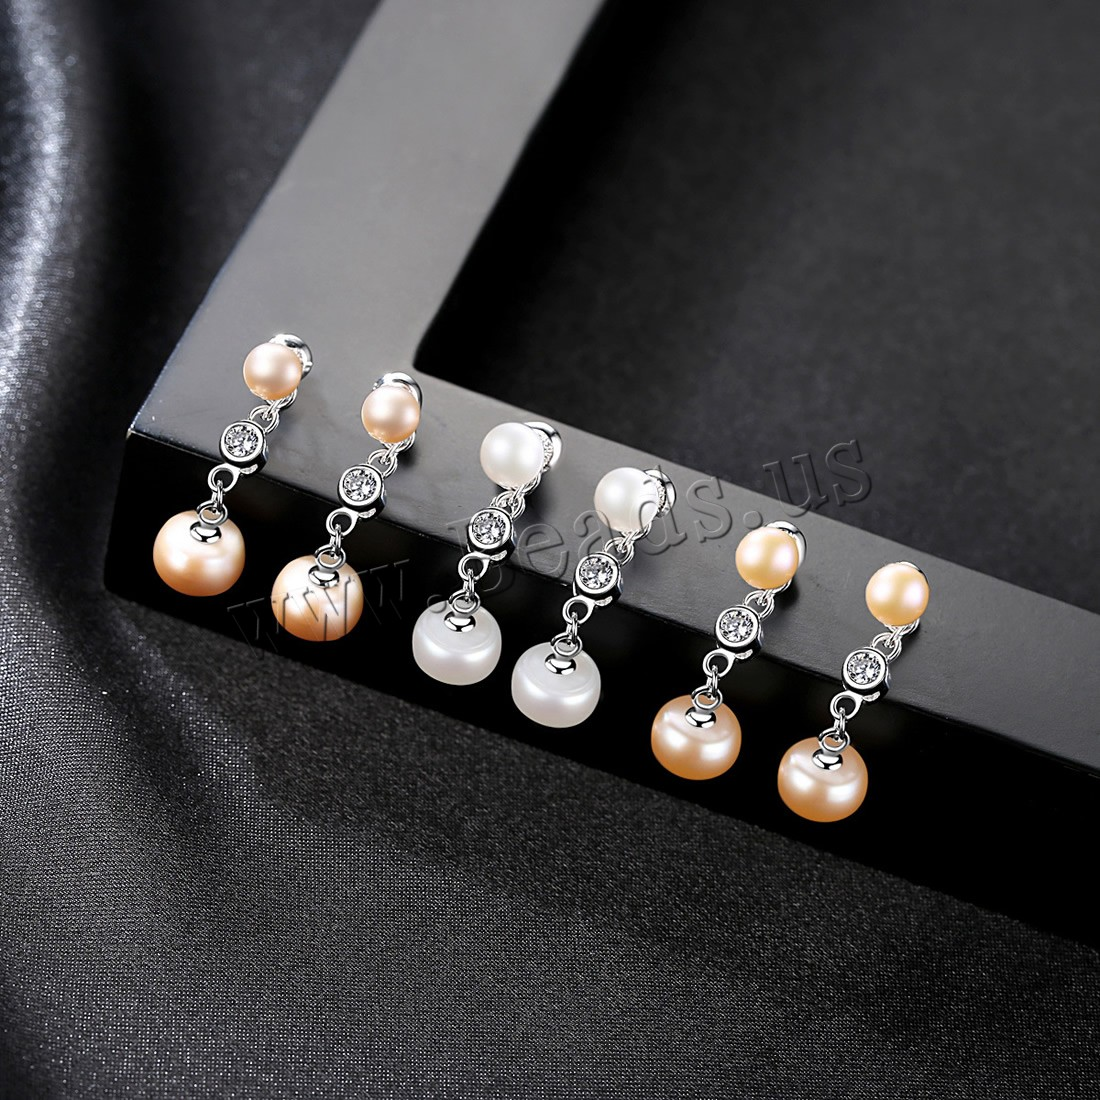 Buy Freshwater Pearl Earrings Brass Cubic Zirconia & Freshwater Pearl stainless steel post pin platinum color plated woman colors choice nickel lead & cadmium free 27x8mm Sold Pair